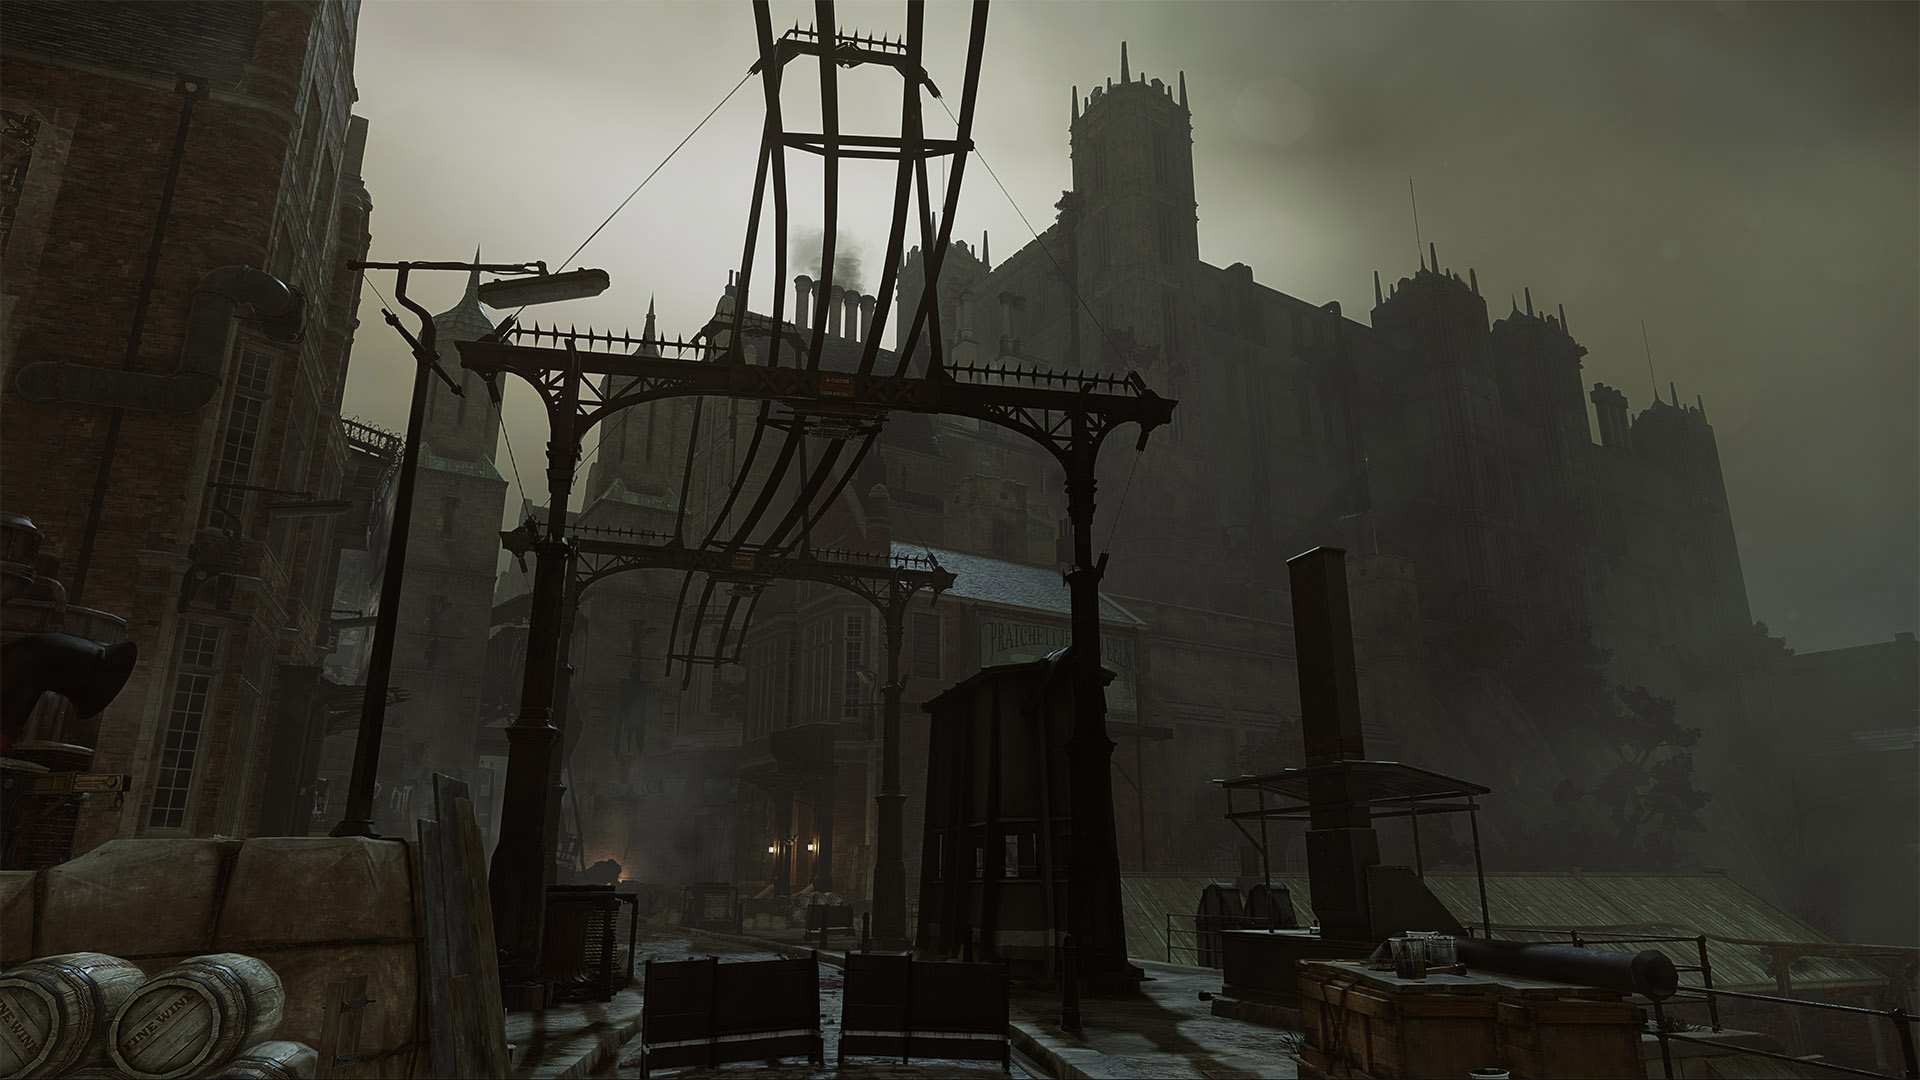 Maxime Maroukian Map Dtte On Dishonored 2